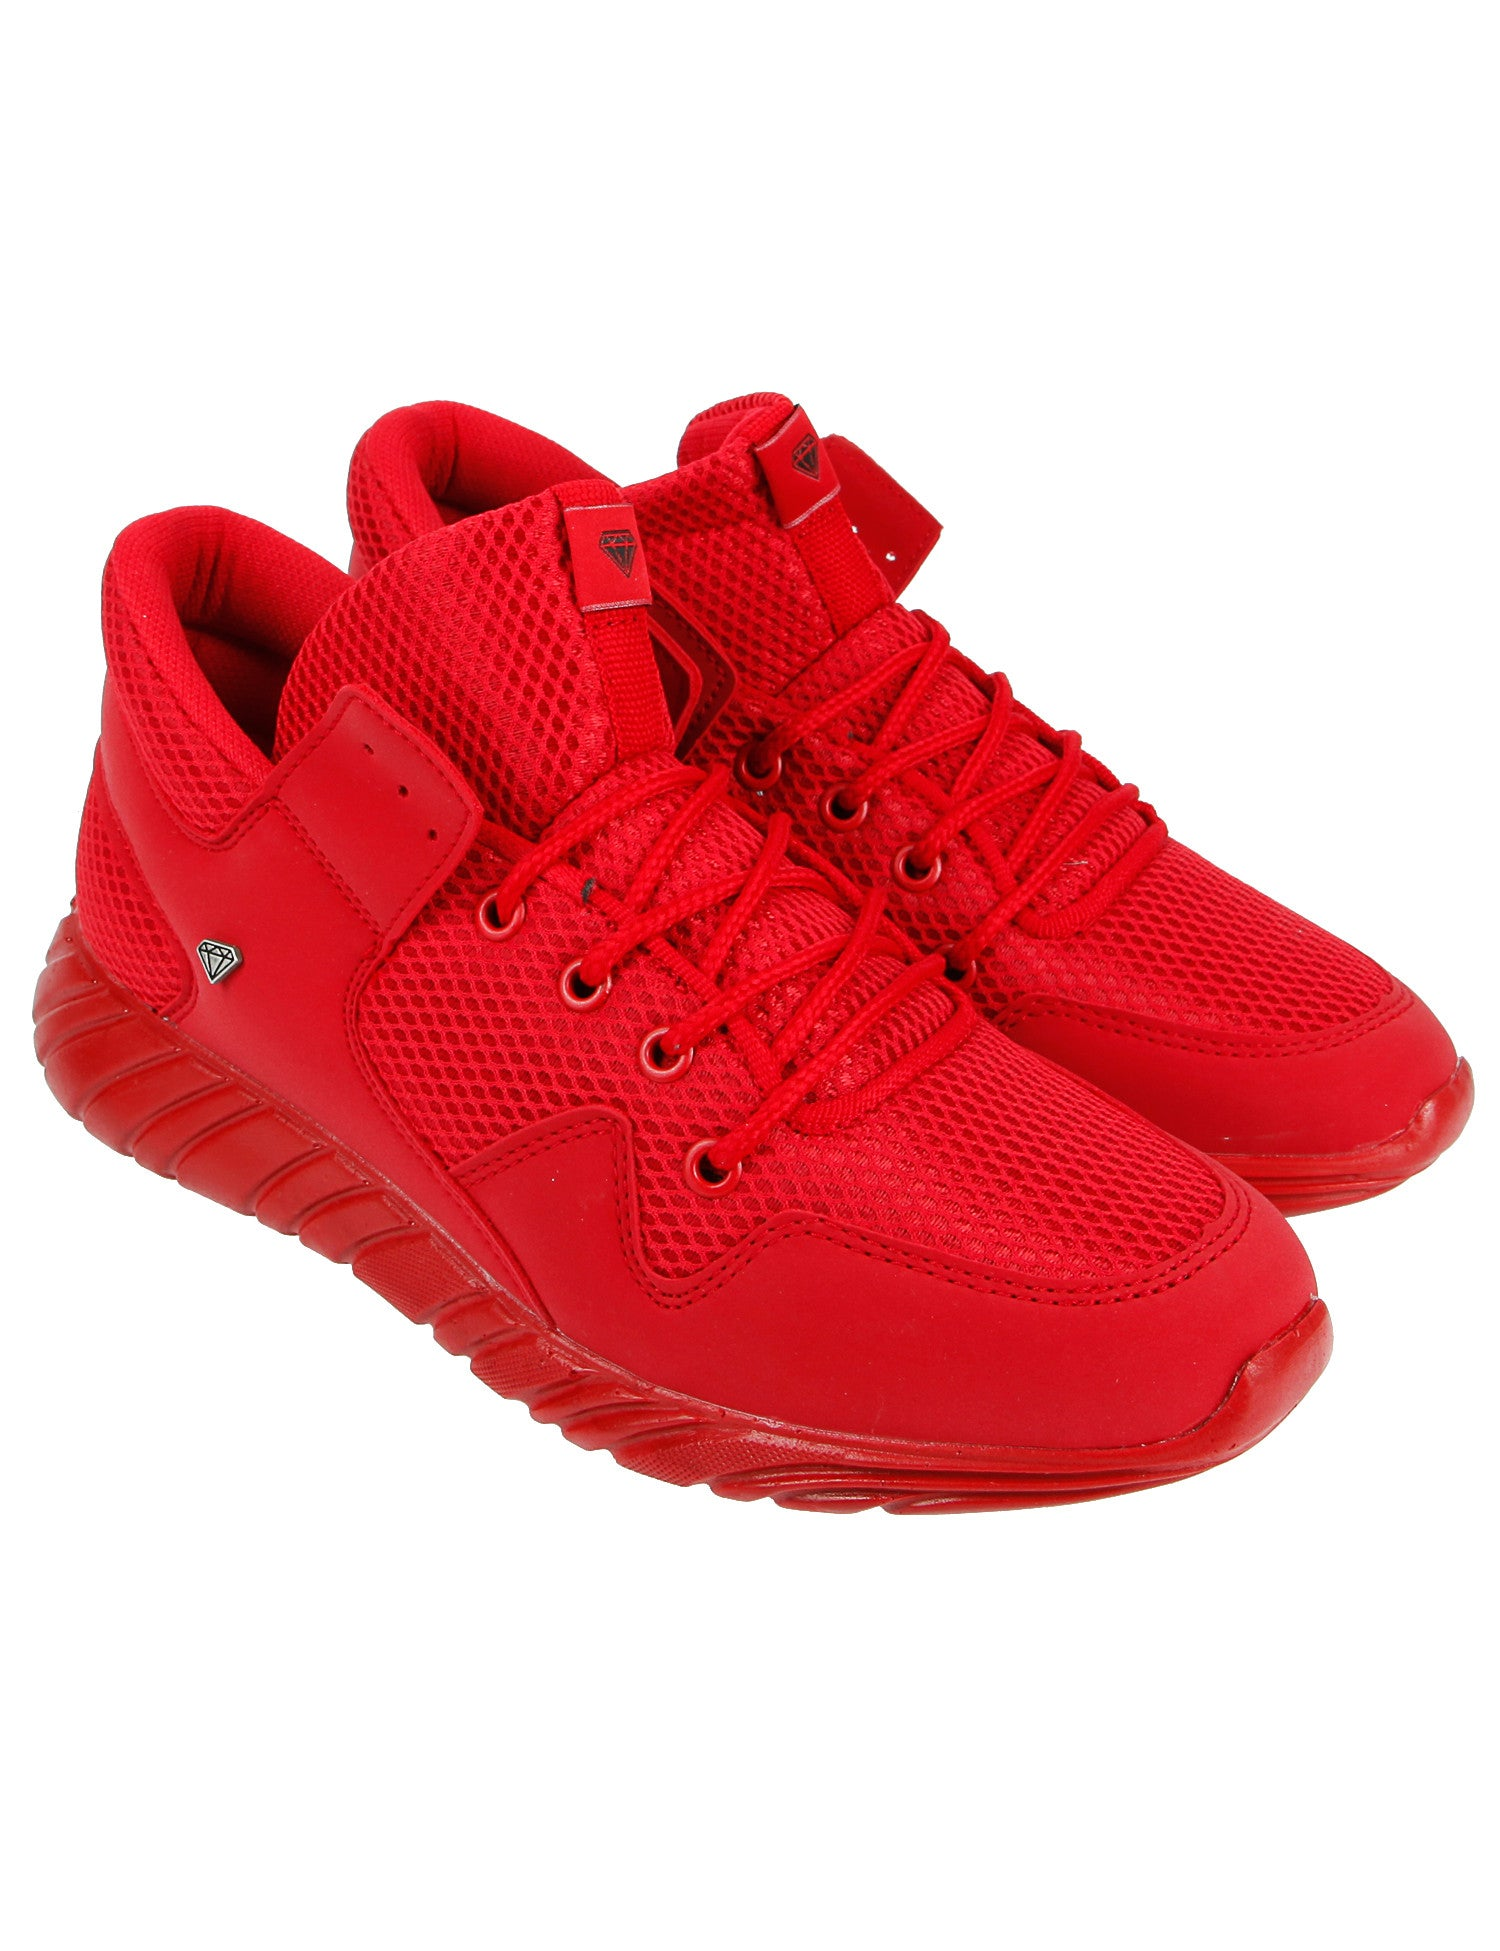 Cash Money Sneakers CMS64 Full Red